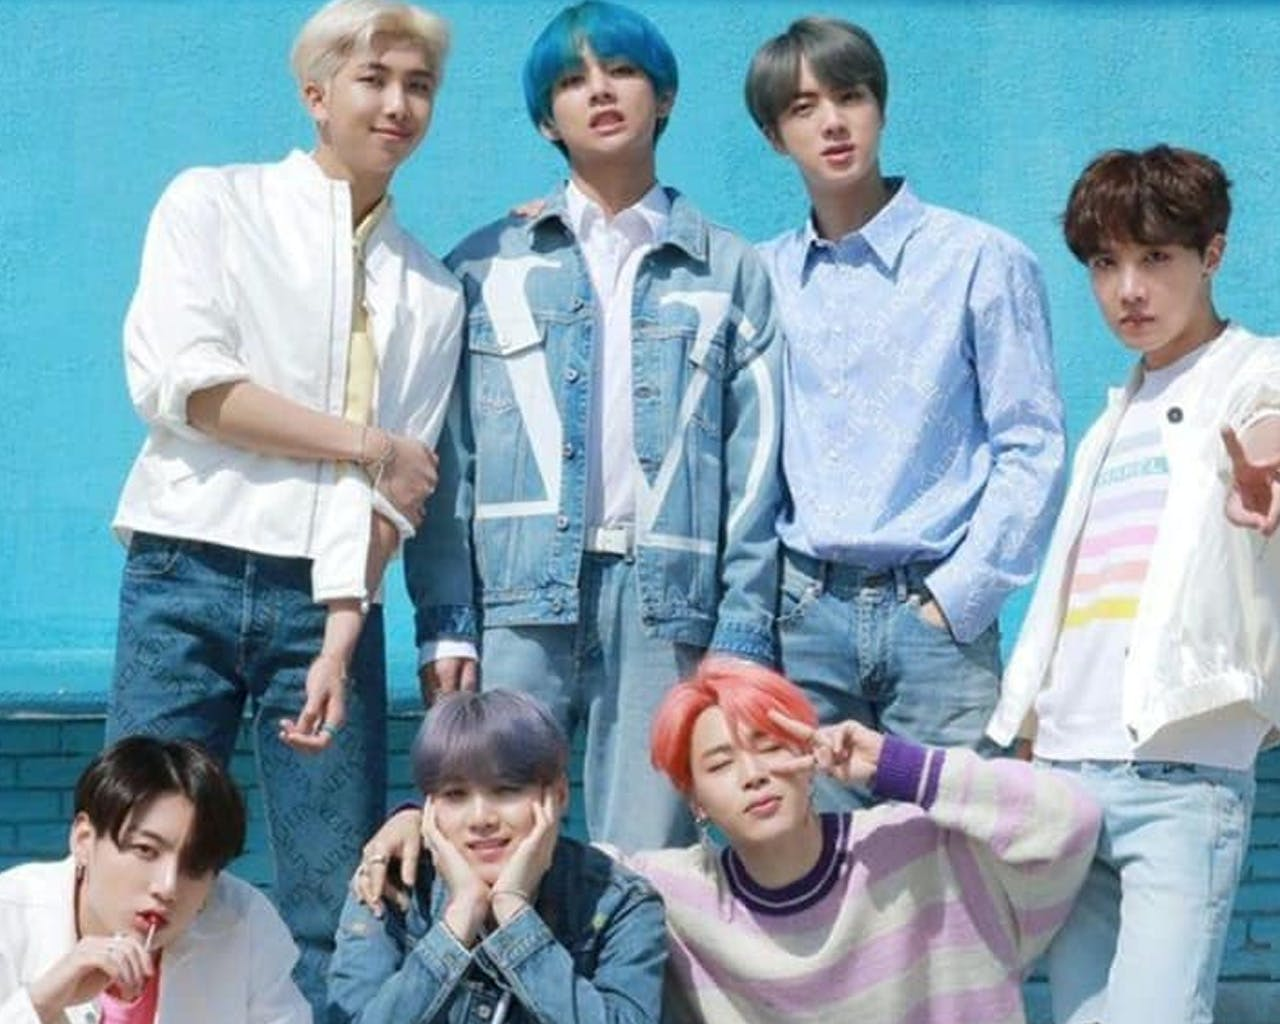 Smart Drops Most-awaited BTS Campaign For The Filipino Youth: Keep Believing You Can Change The World